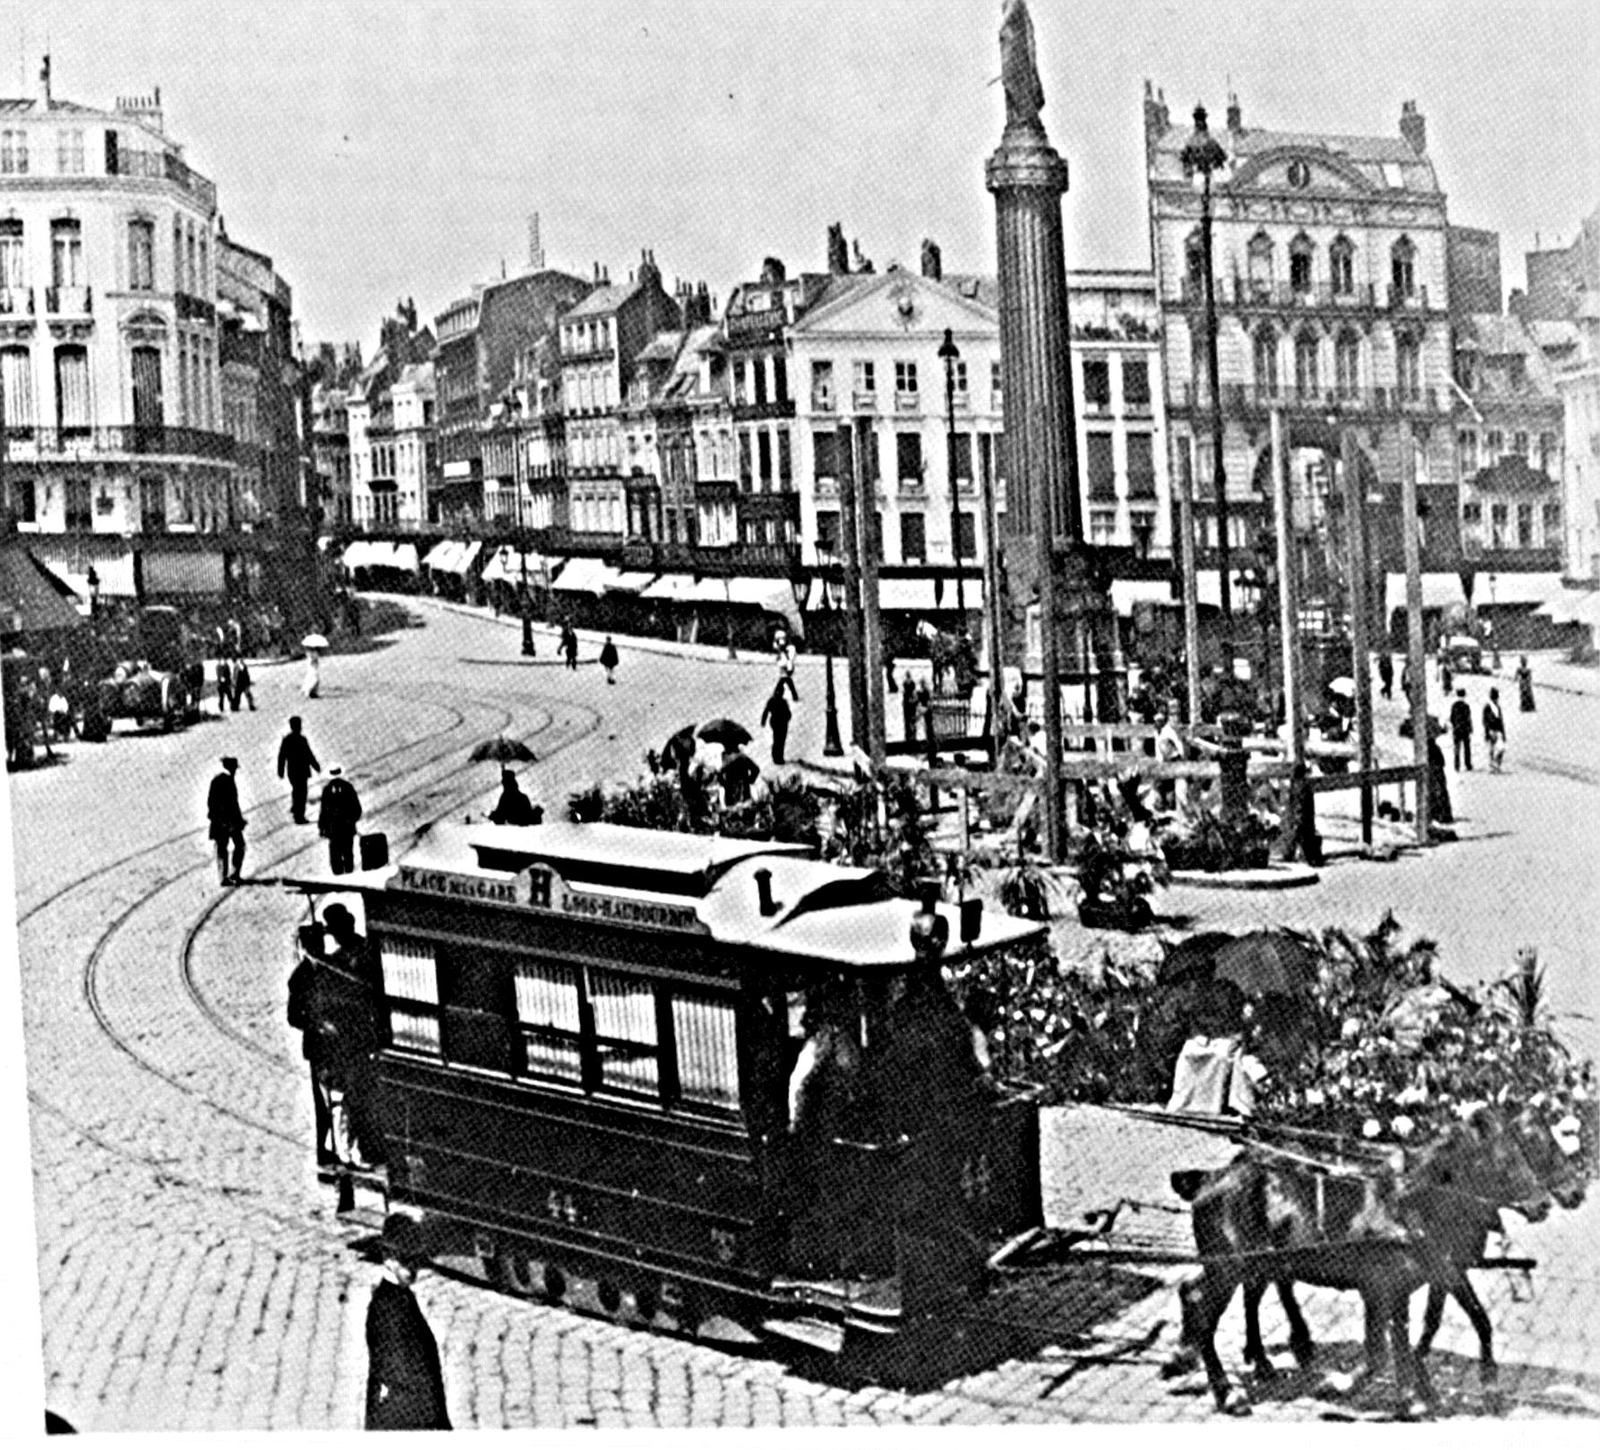 un tramway tiré par 2 chevaux, grand place